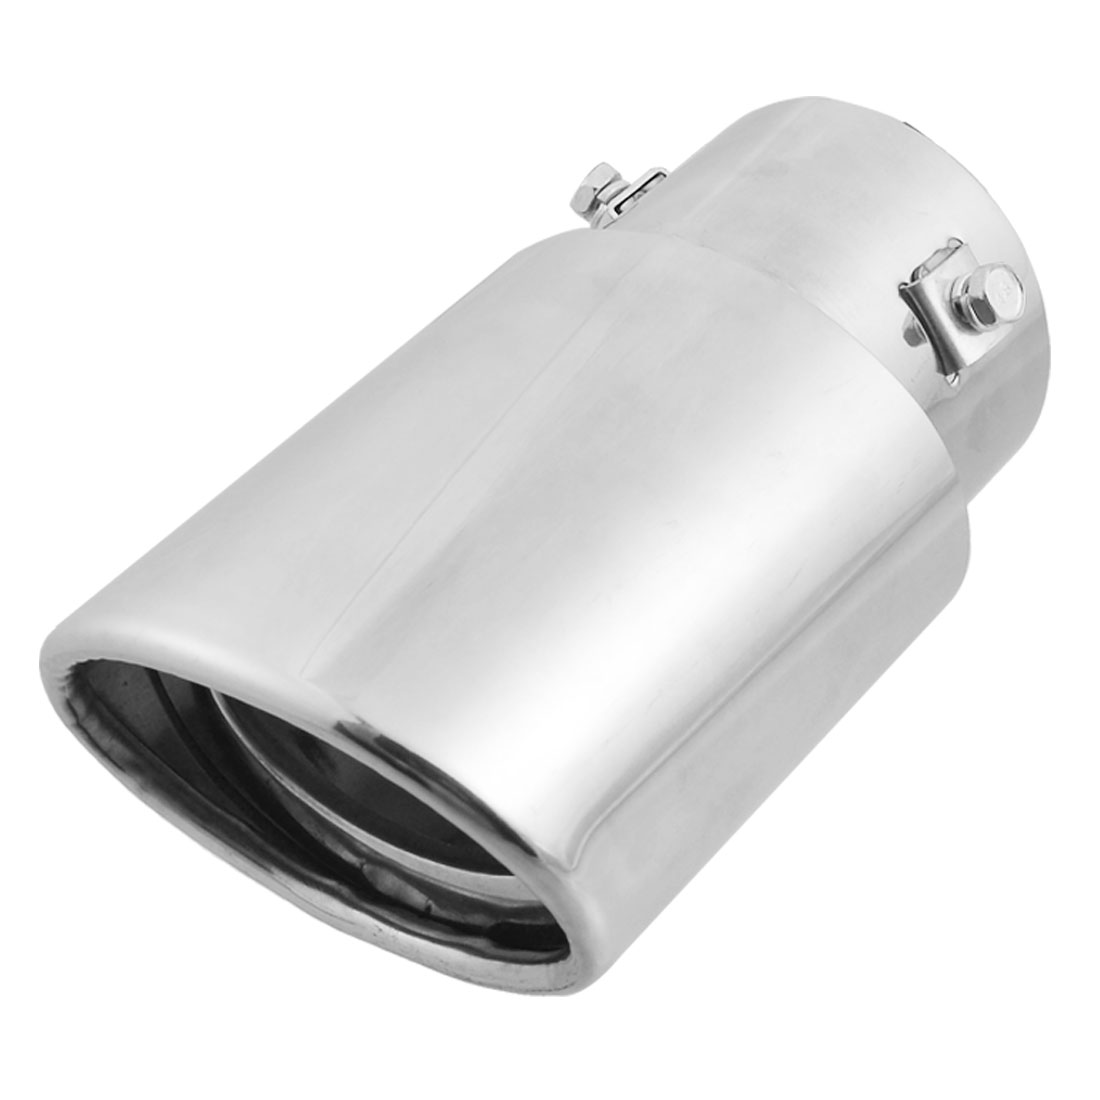 60mm Inlet Oval Slant Cut Metal Car Exhaust Pipe Muffler Tip